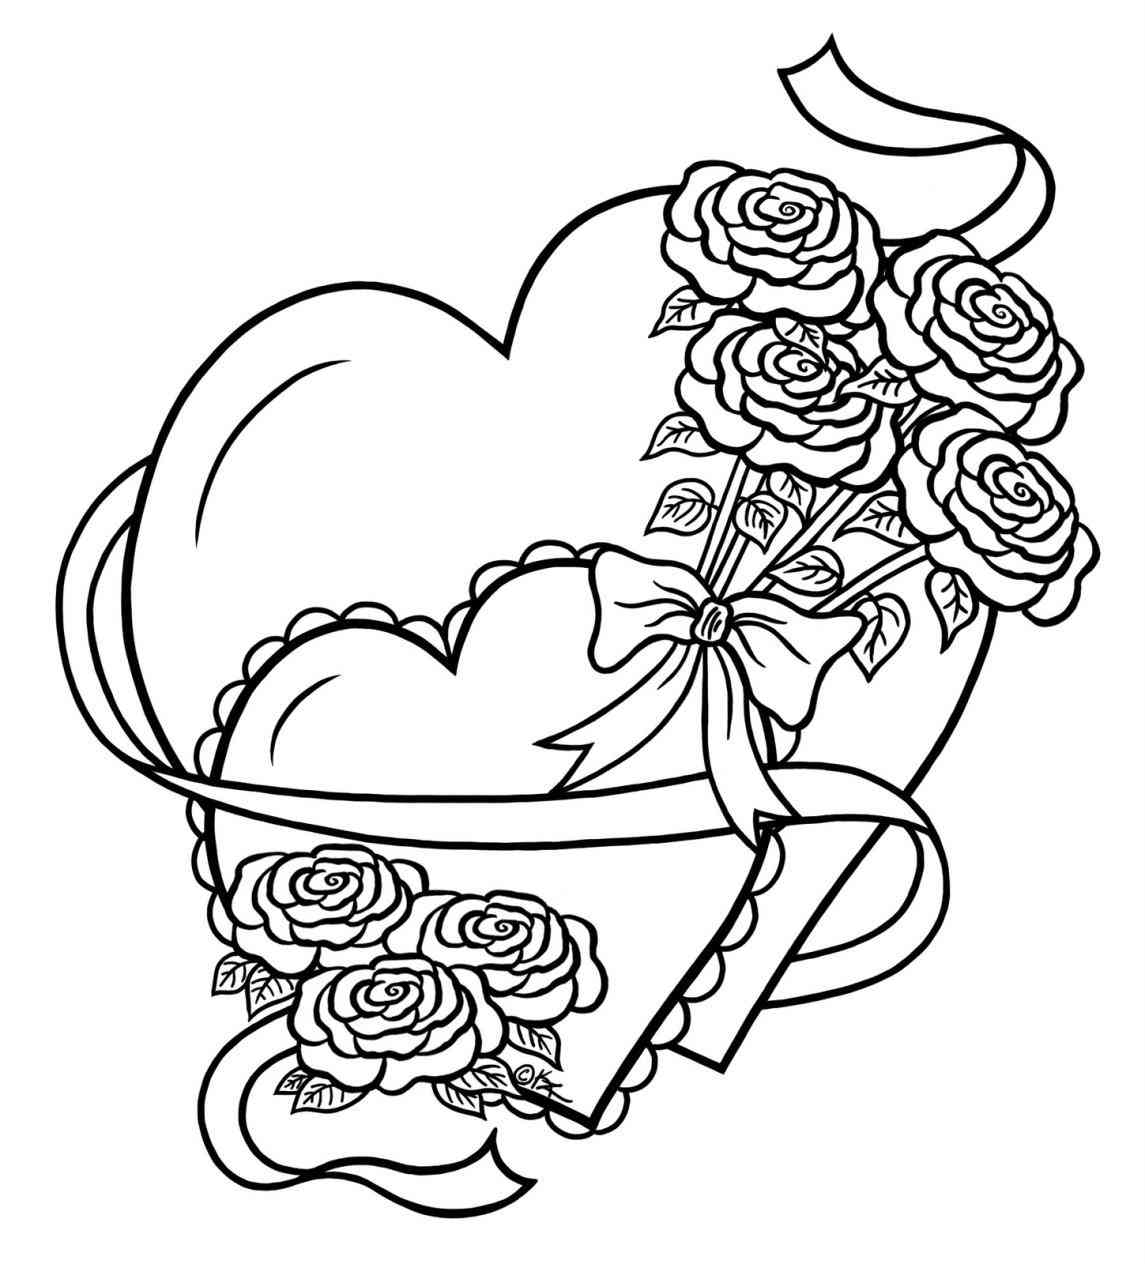 Heart Drawing Step By Step At Getdrawings Com Free For Personal